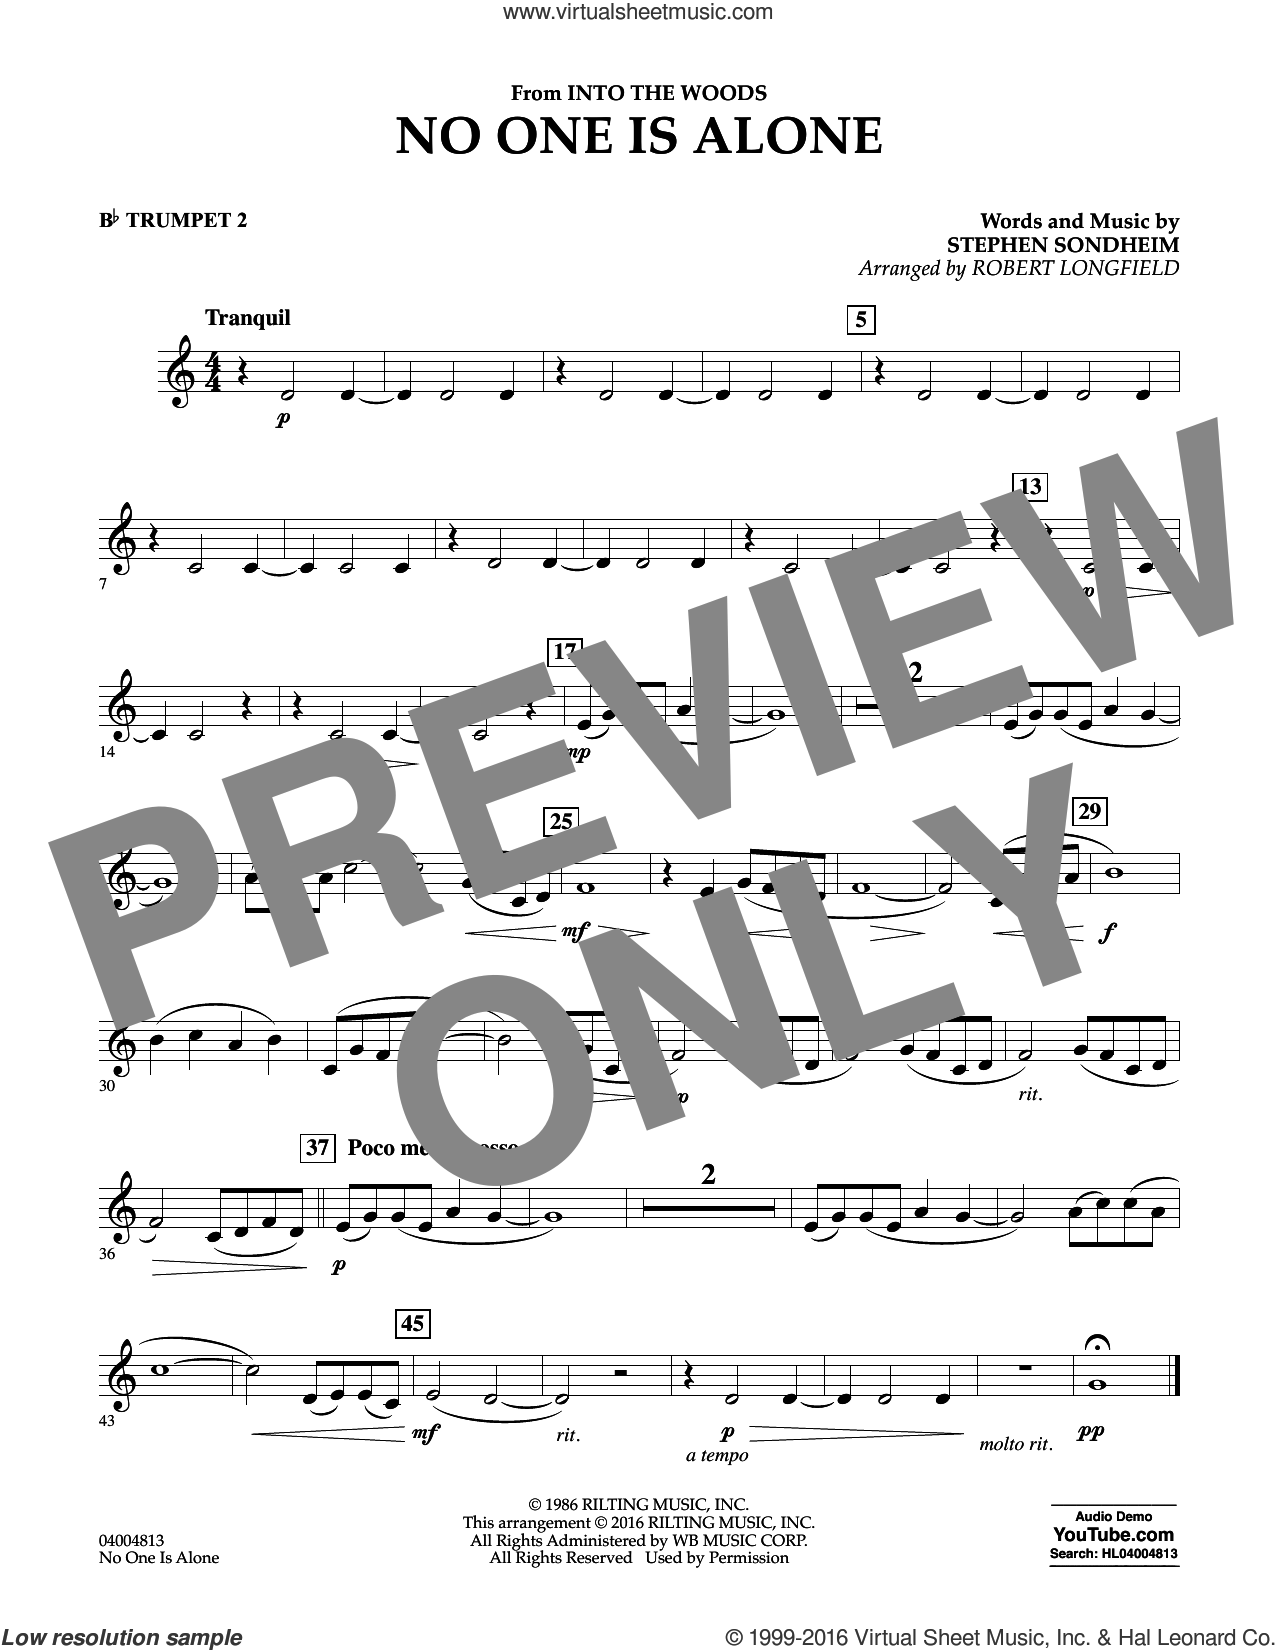 No One Is Alone sheet music for concert band (Bb trumpet 2) by Stephen Sondheim and Robert Longfield, intermediate skill level